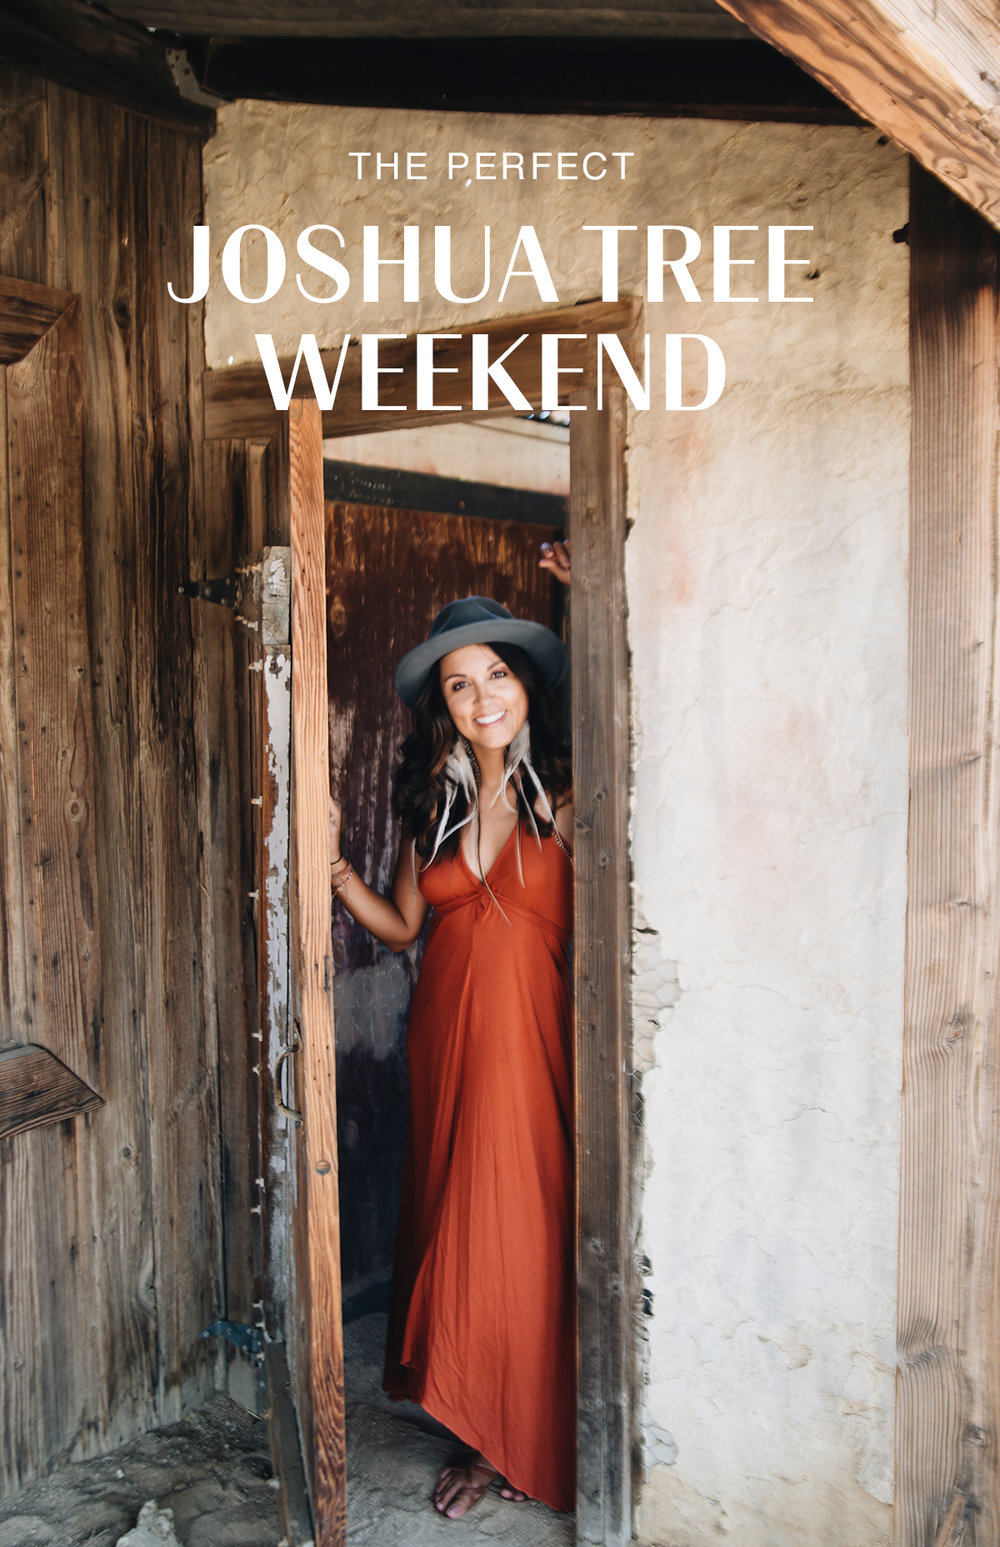 social-chrissihernandez-joshuaTree-weekend-itinerary-02.jpg